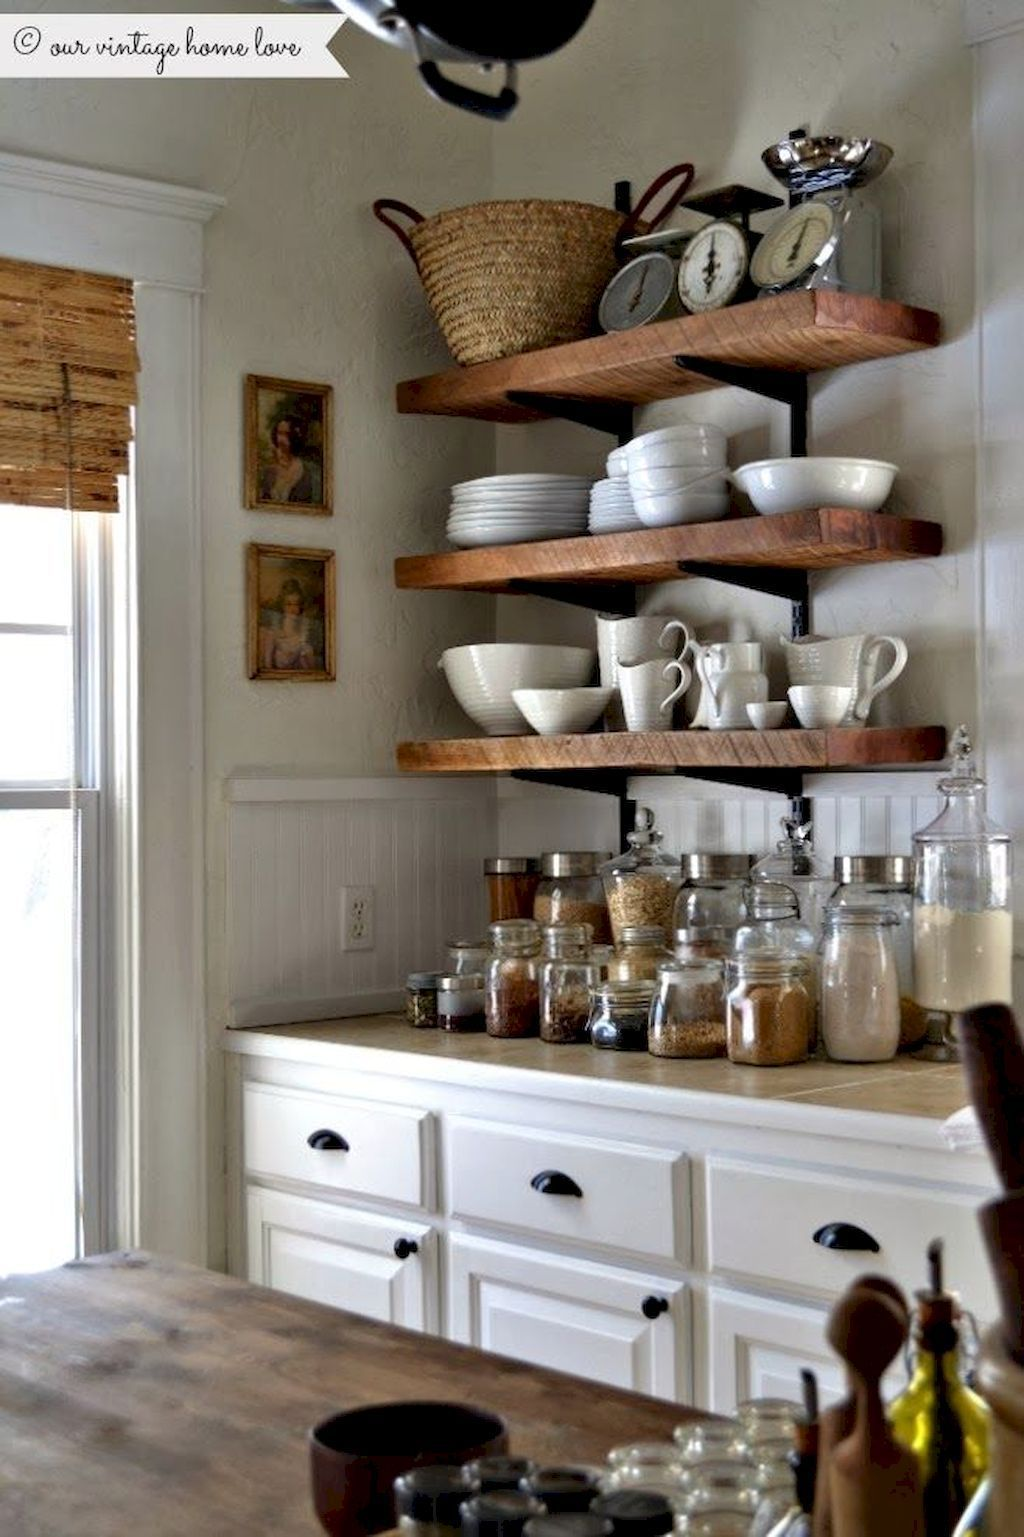 Rustic kitchen cabinets wood shelves in kitchen rustic shelves kitchen shelving units